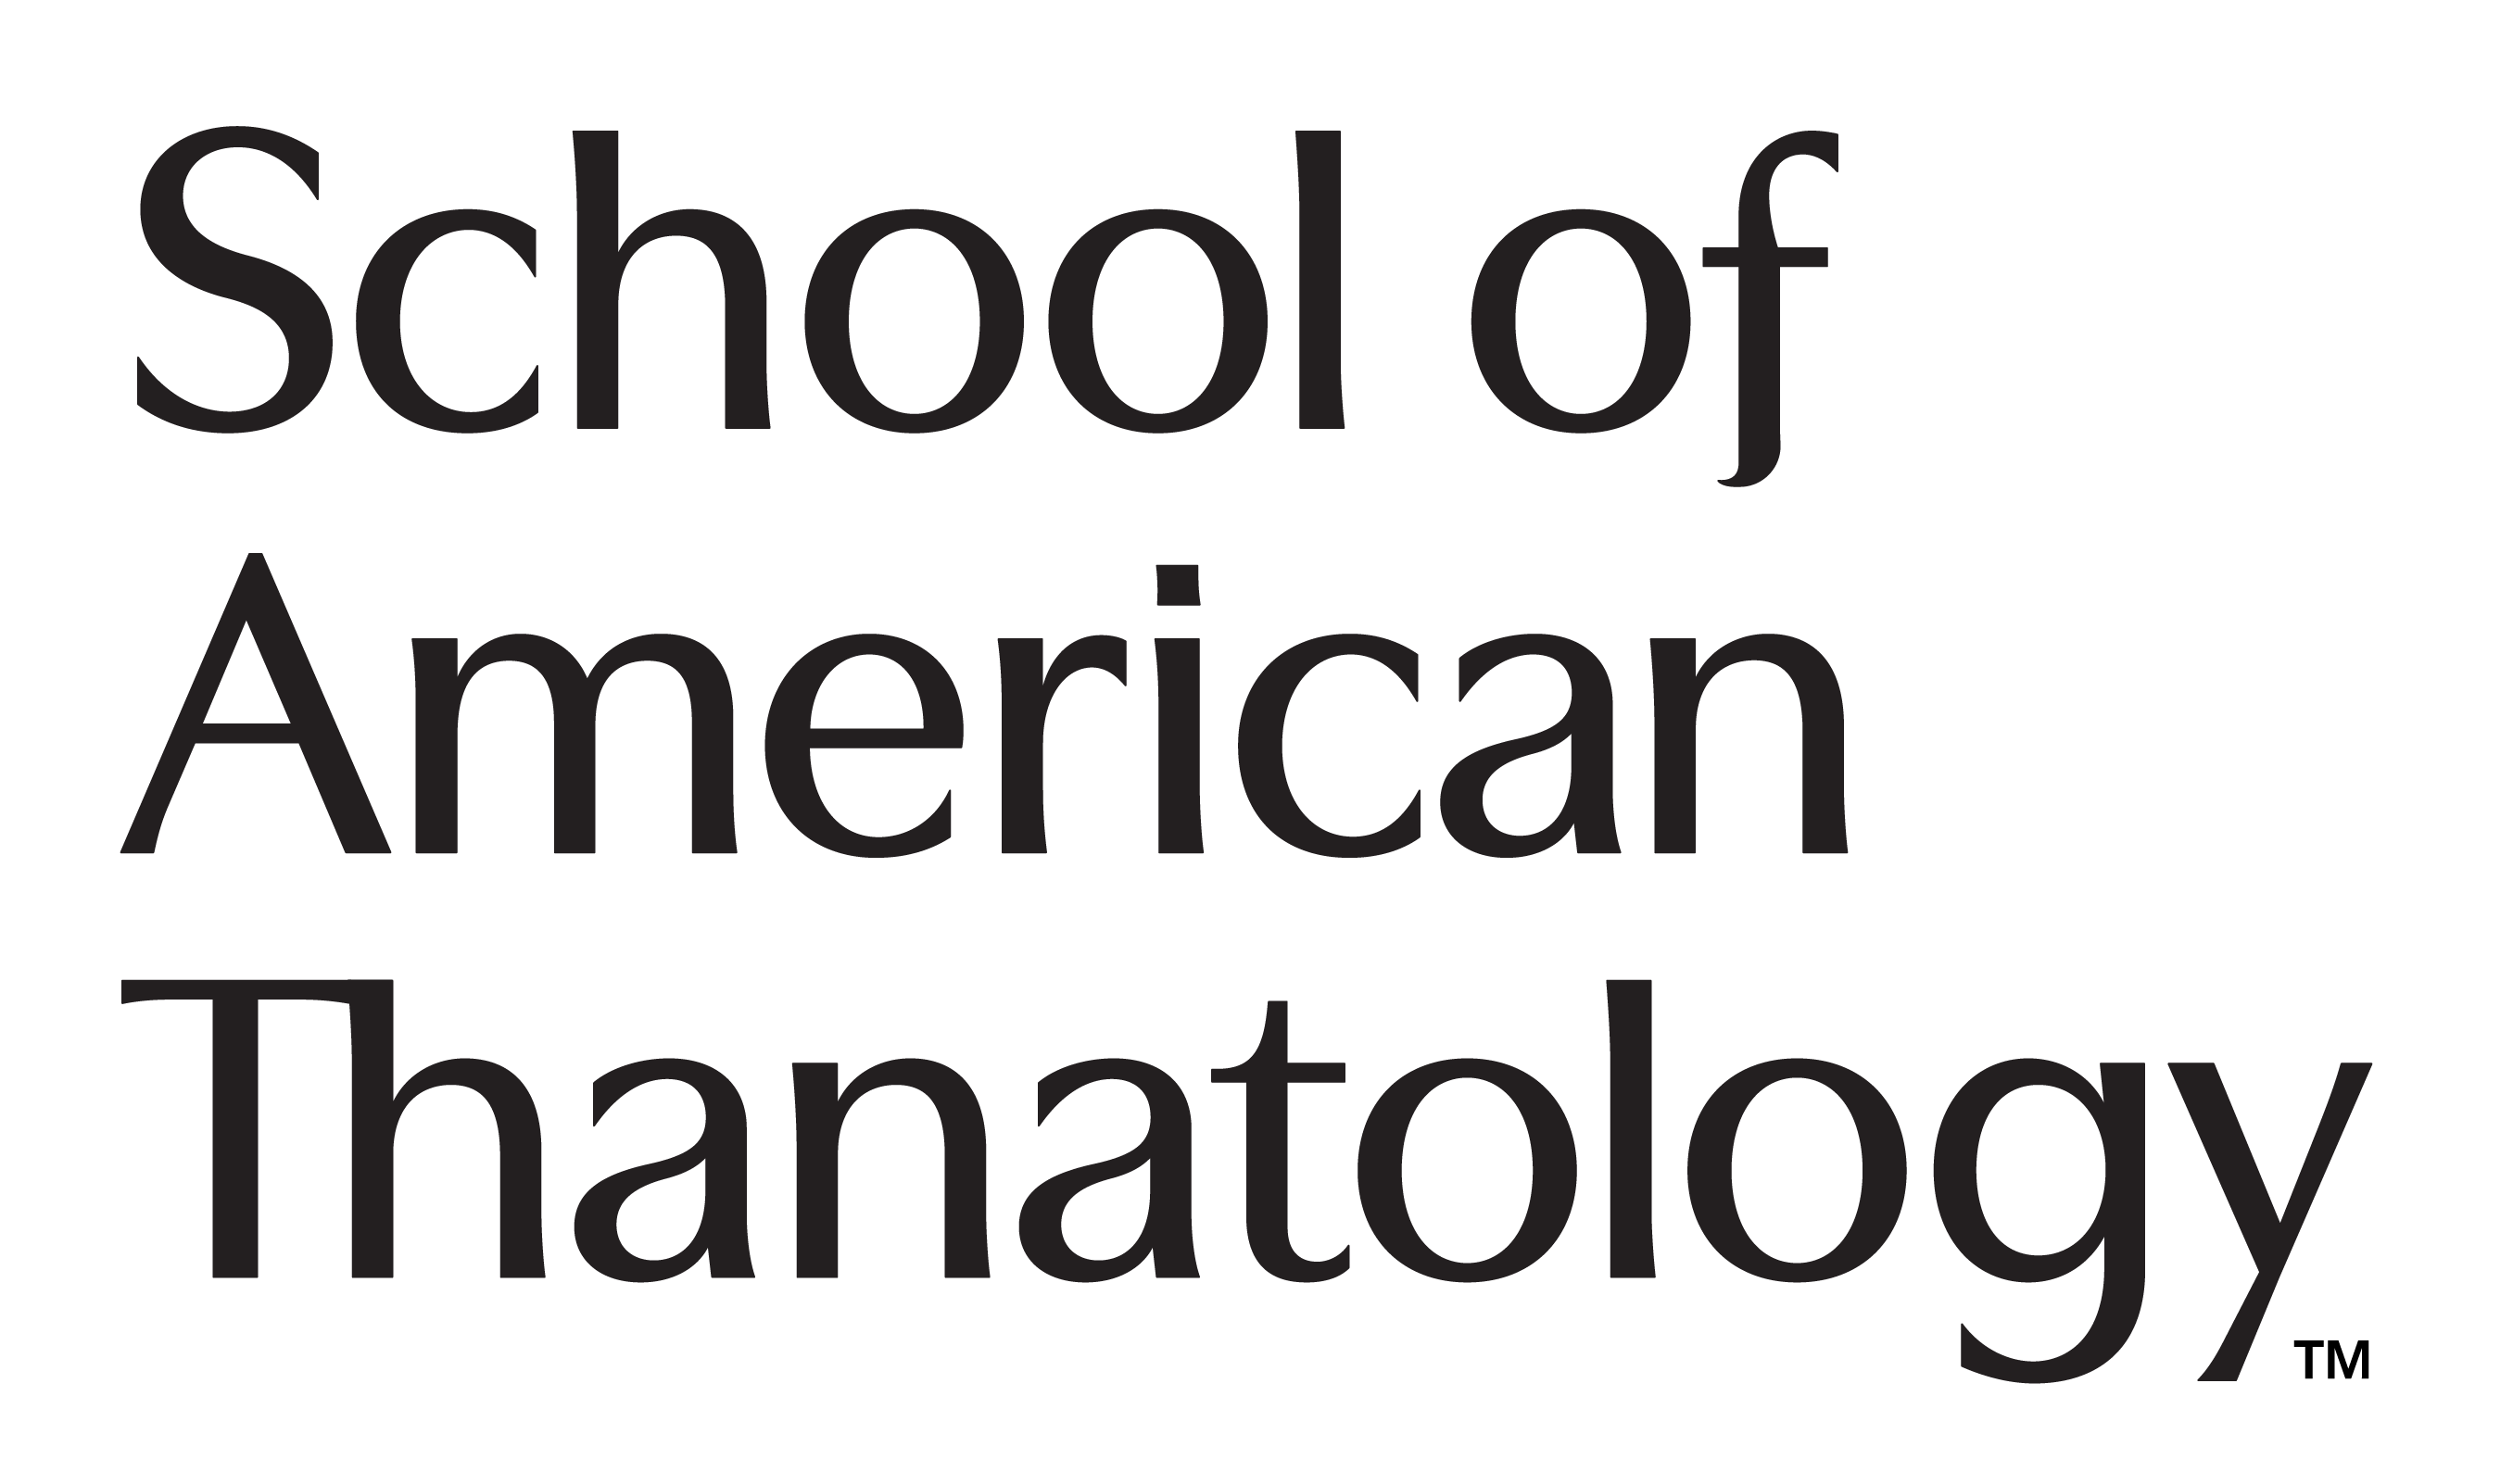 School of American Thanatology Logo